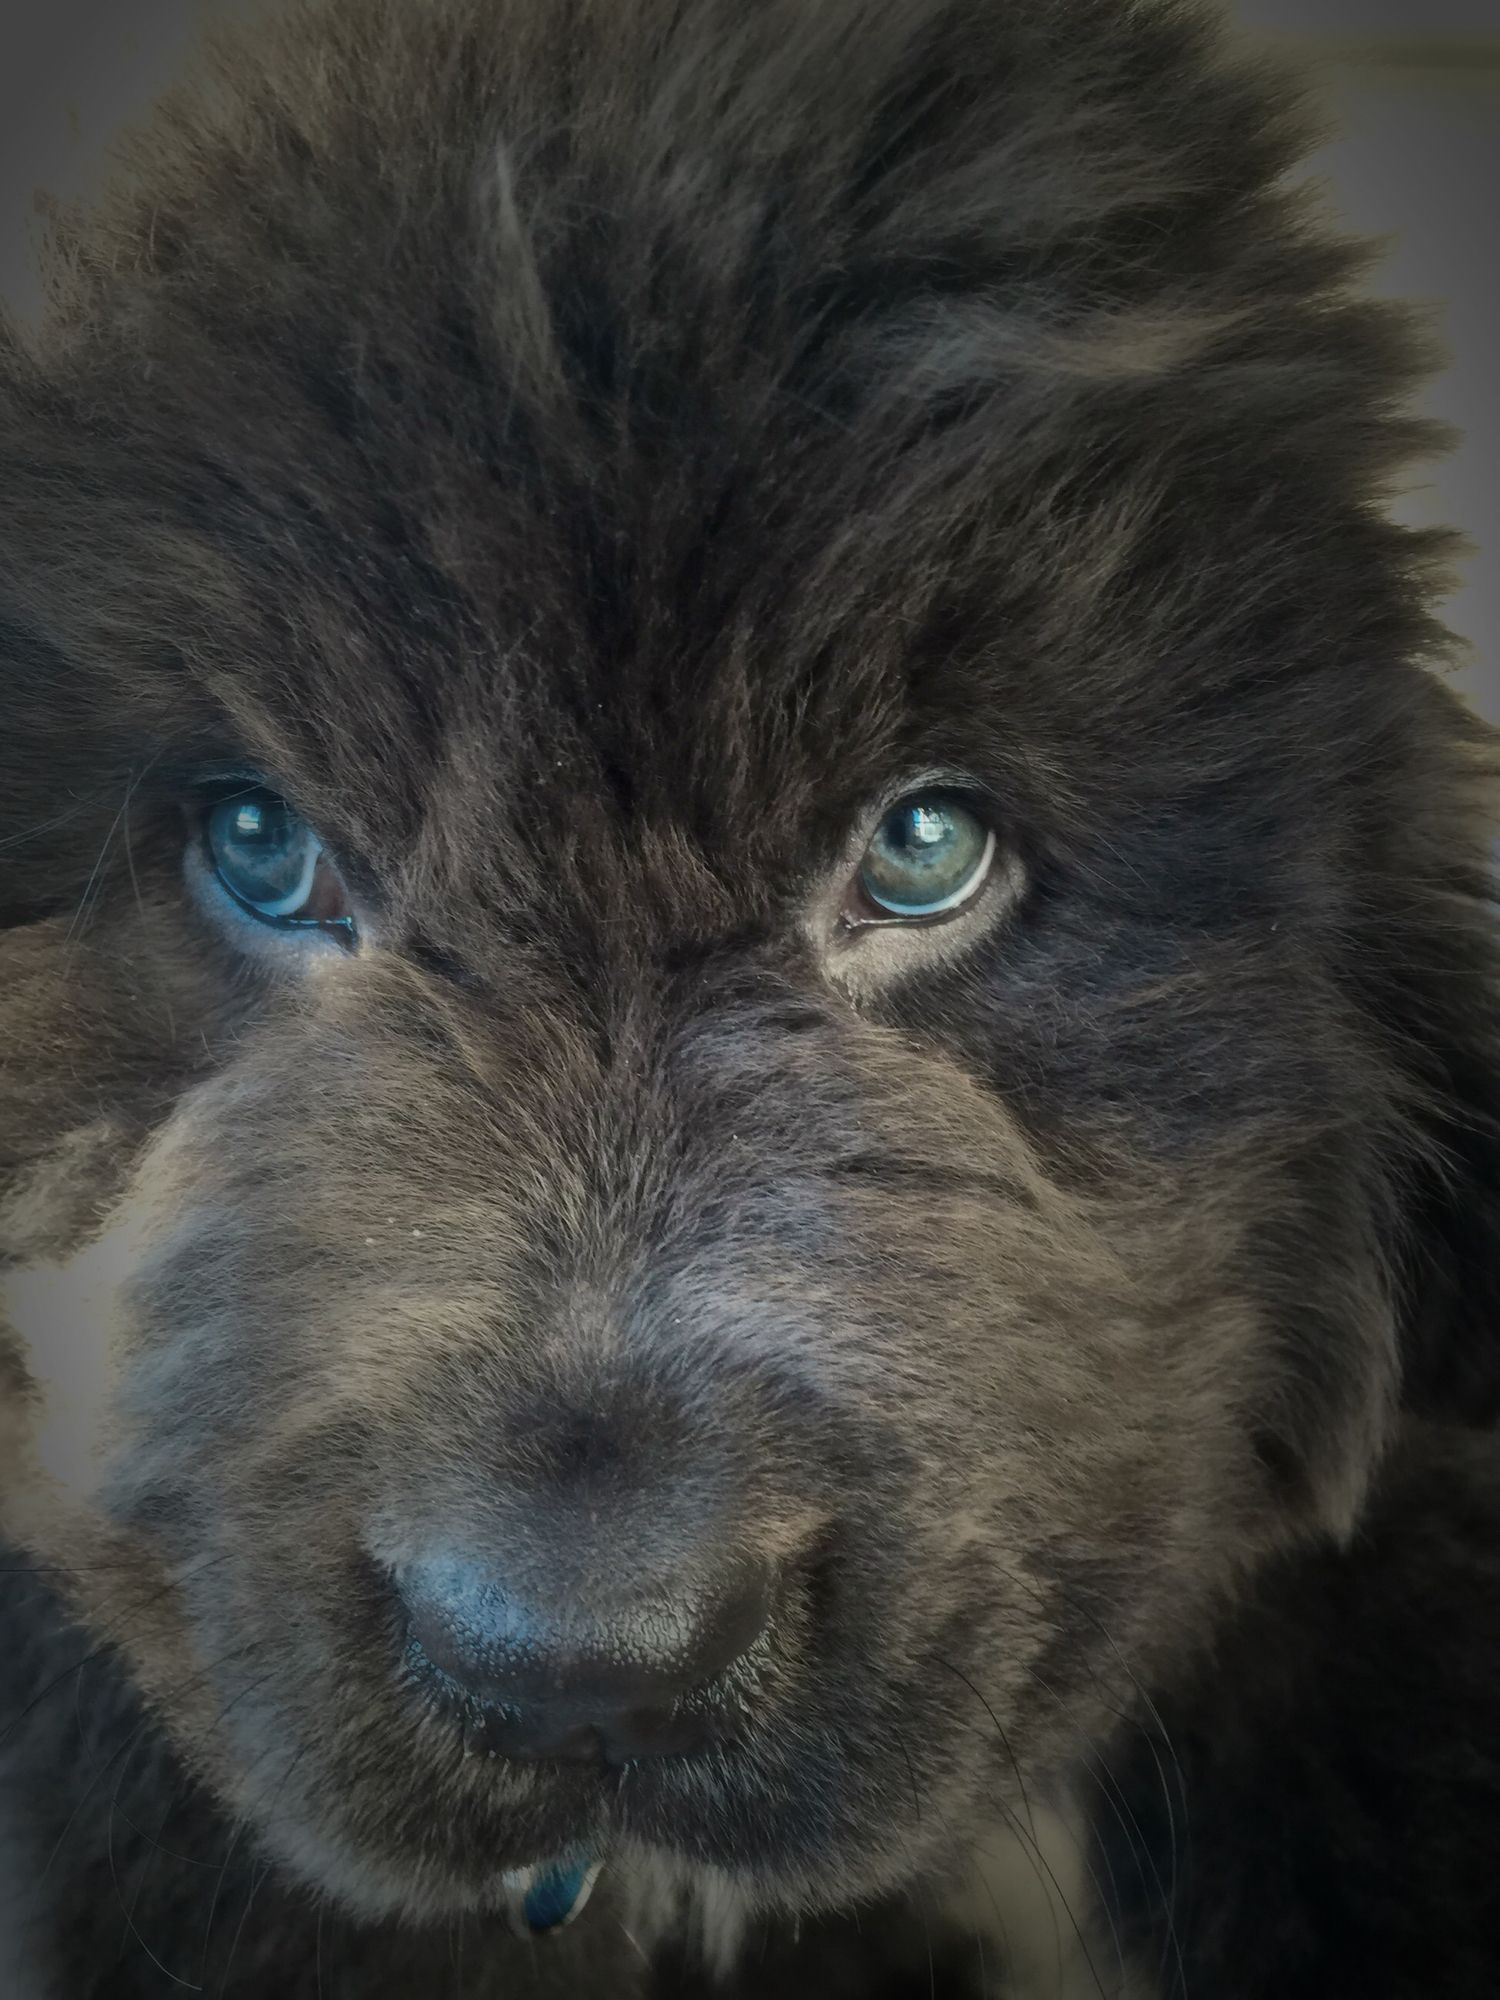 35 very beautiful newfoundland dog pictures - 9 1 2 Wks Old Gray Newfoundland Puppy Those Blue Green Eyes